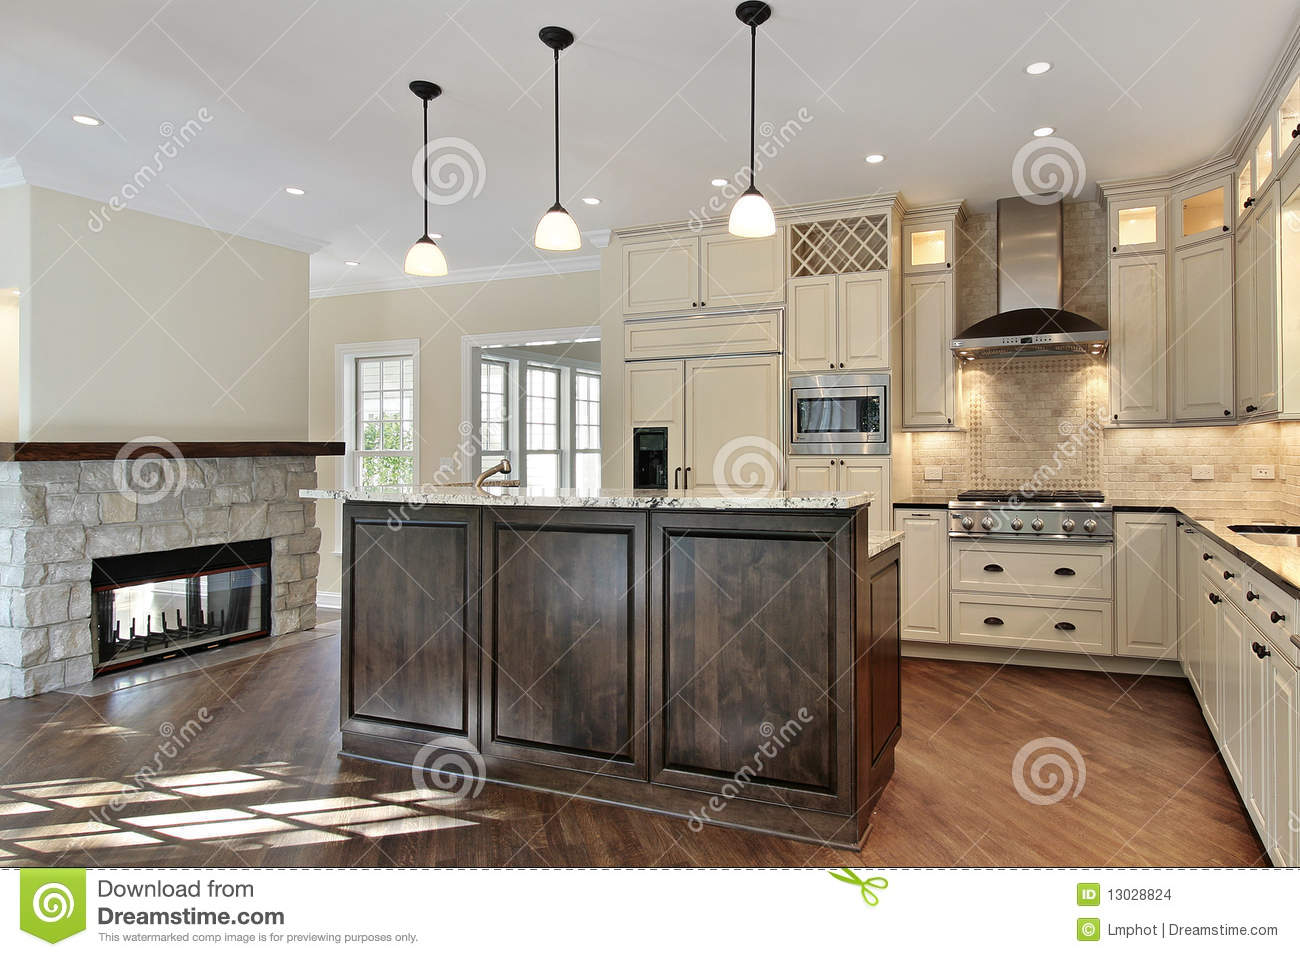 home interior design vector with Stock Images Kitchen Stone Fireplace Image13028824 on Royalty Free Stock Photos Drawing Room Image13511178 additionally Creative Wallpapers additionally Vector Window Pink Shutters Transparent Curtains 627444149 moreover 3710 0 furthermore Stock Images Kitchen Stone Fireplace Image13028824.